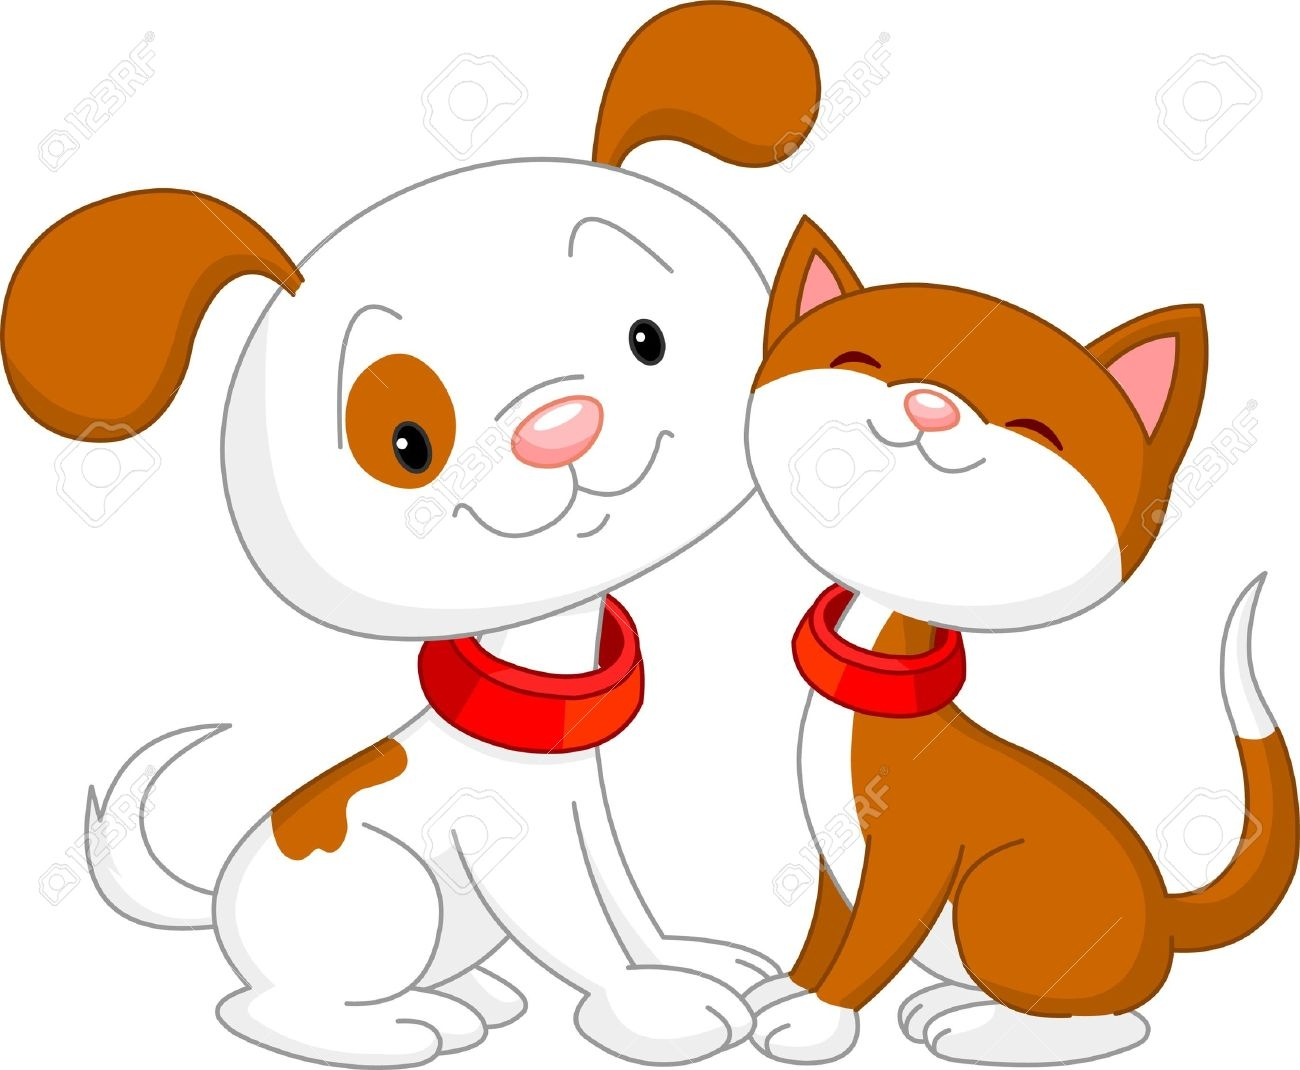 Pet clipart dog cat, Pet dog cat Transparent FREE for.